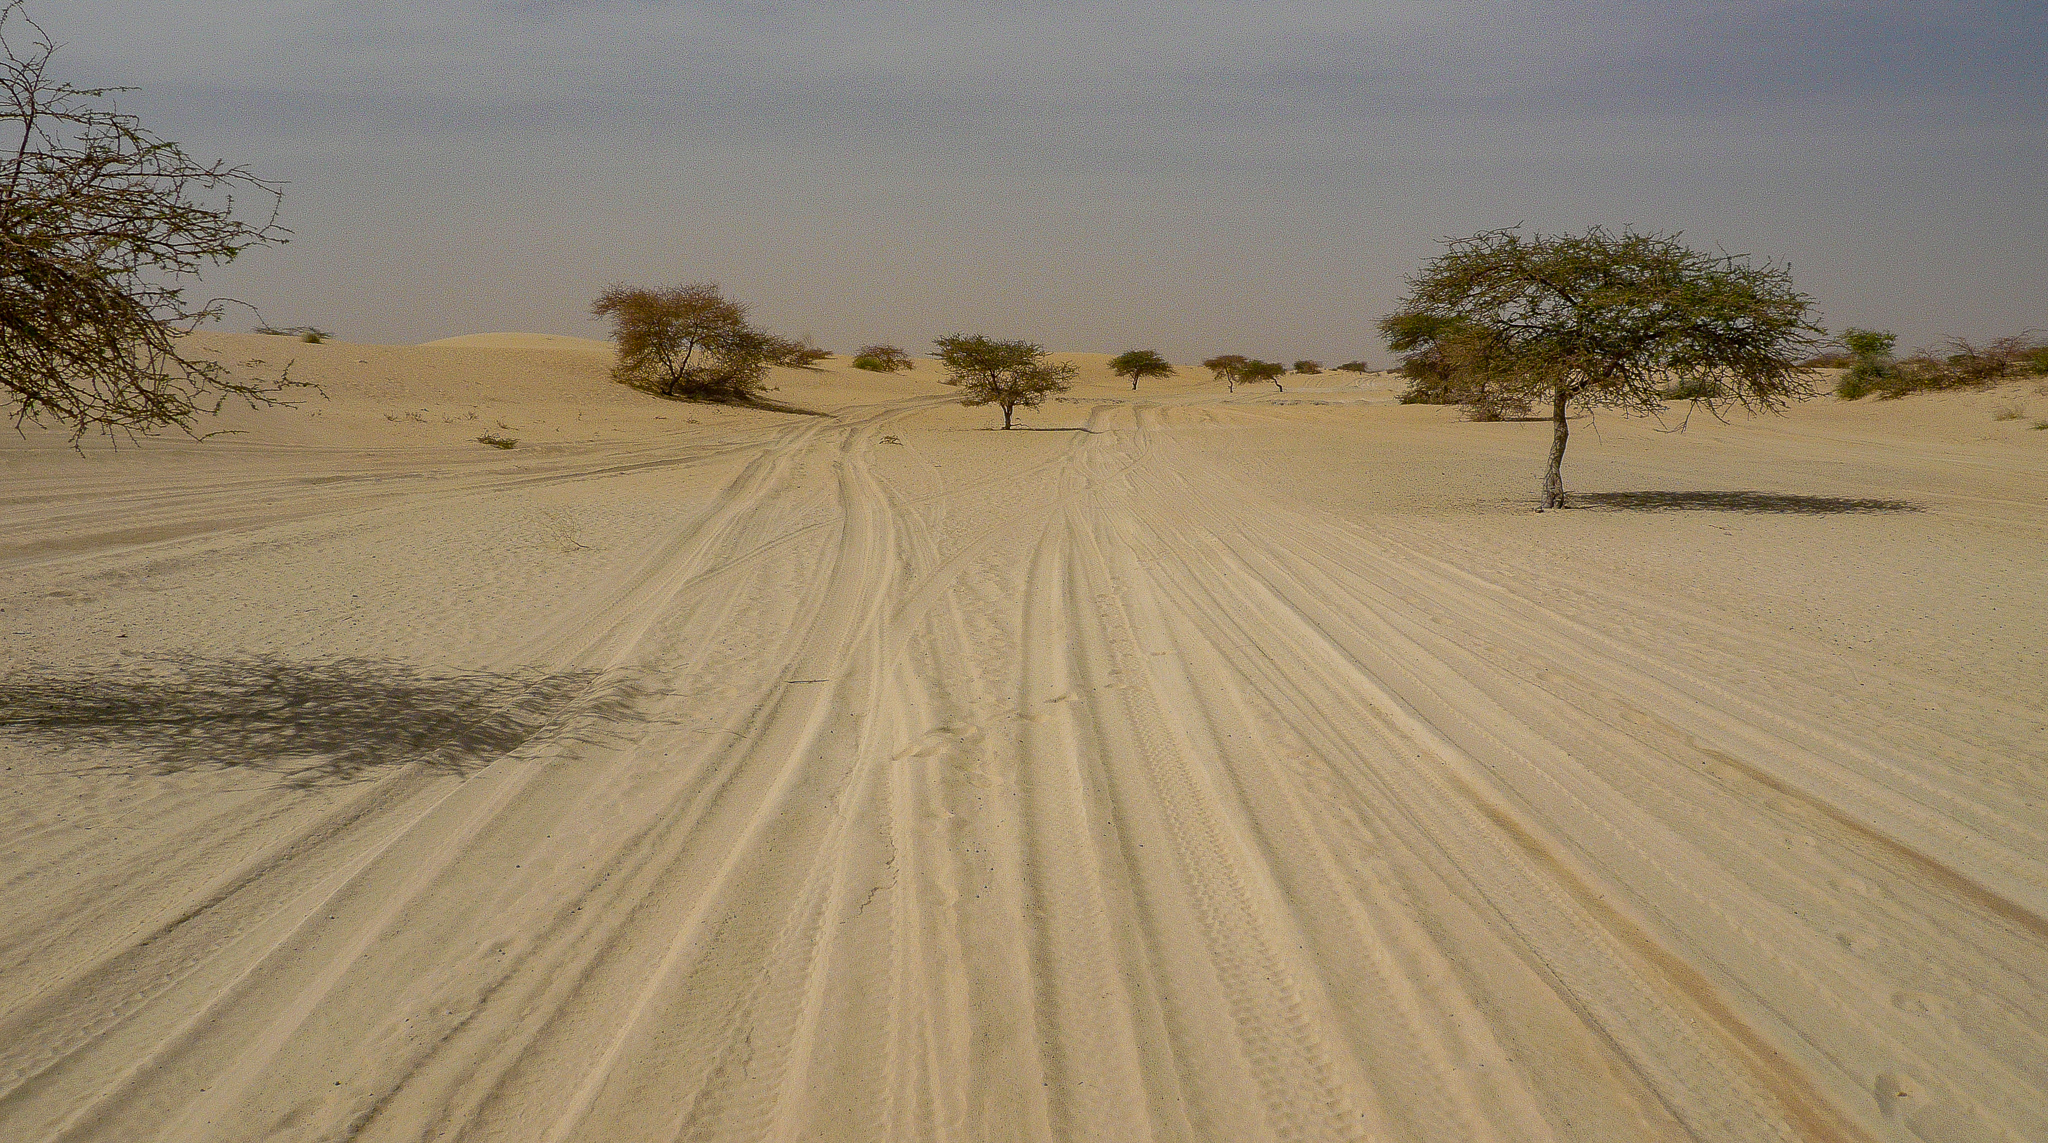 LEAVING TIMBUKTU BEHIND, WE HEADED EASTWARDS, FOLLOWING THE DESERT PISTE TO GAO. WE ONLY PASSED ONE VEHICLE ALL DAY.